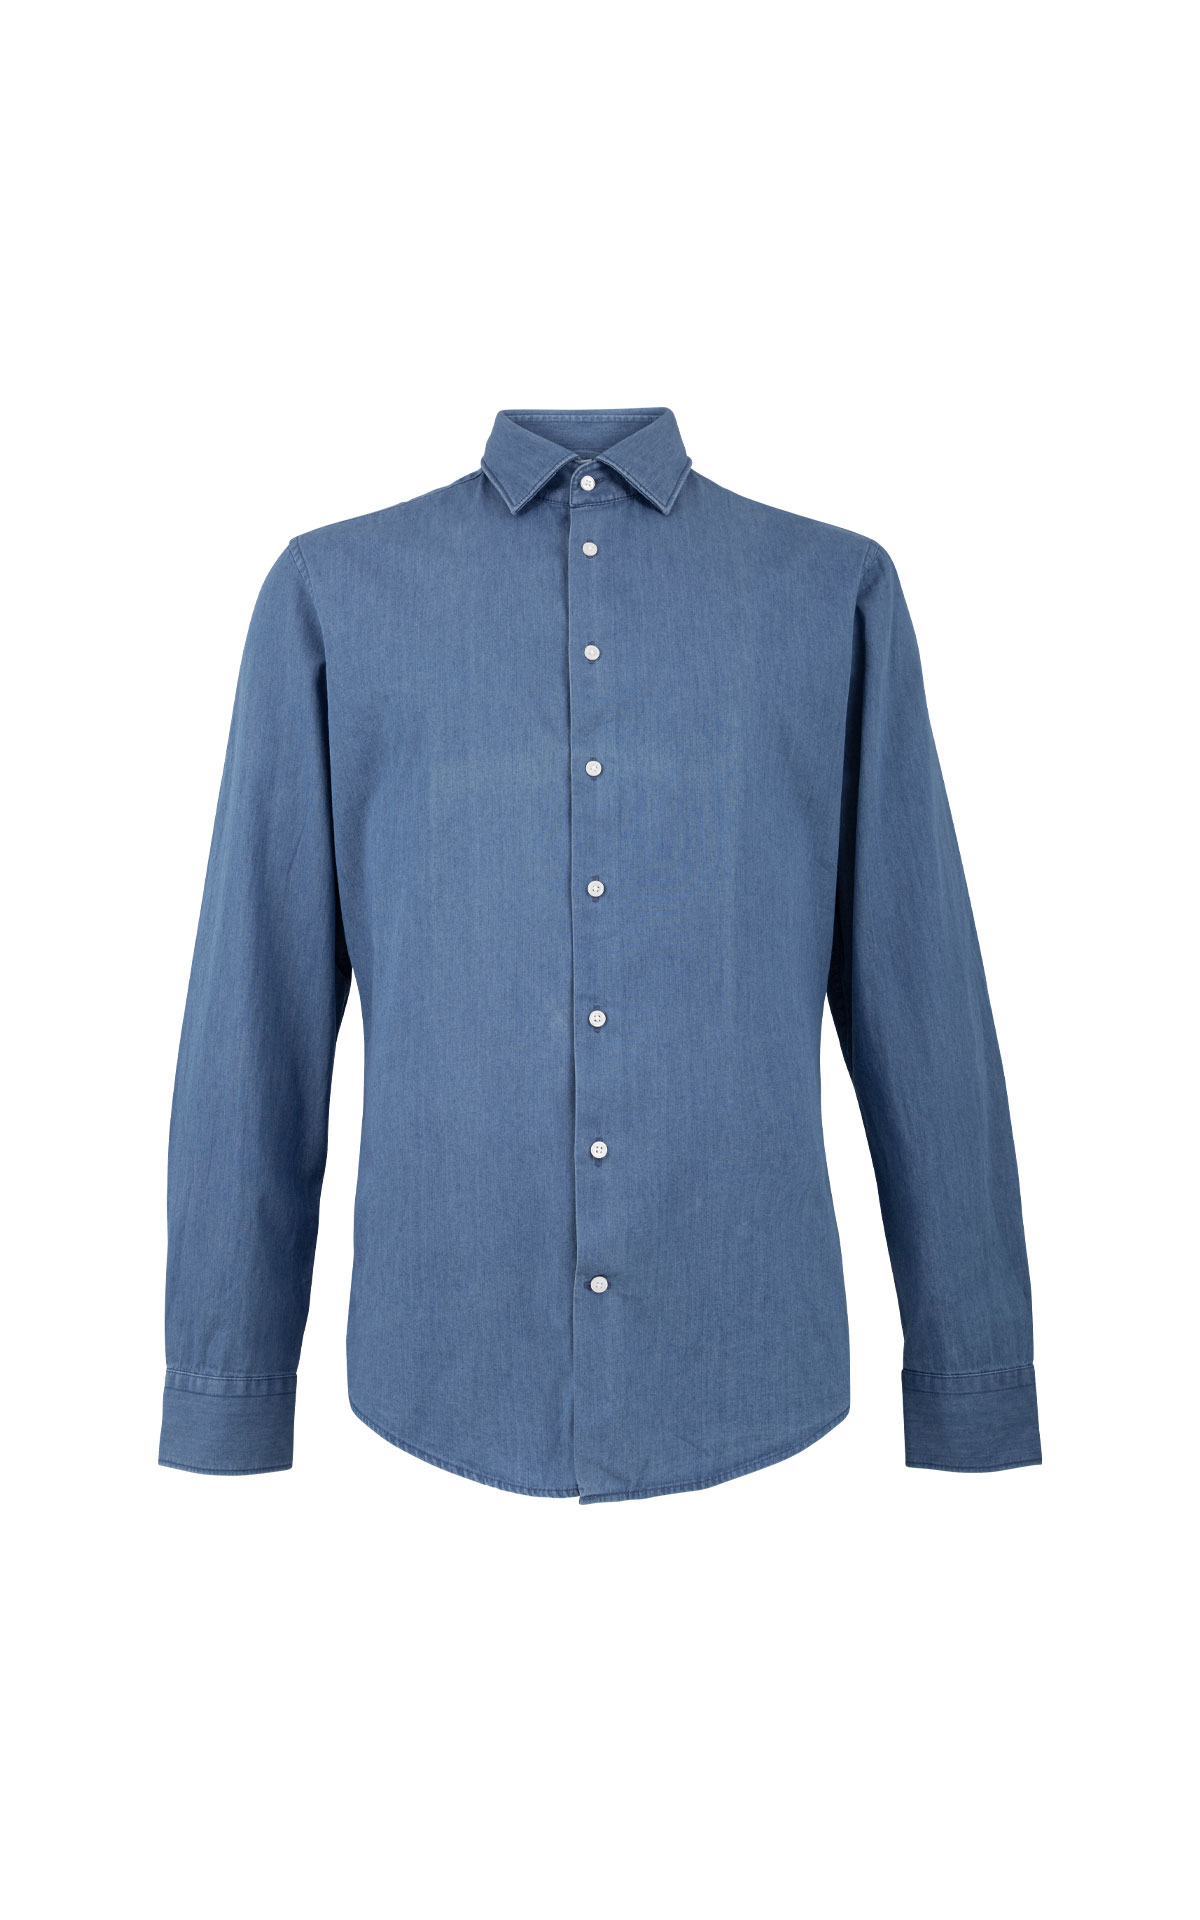 Seidensticker denim Shirt